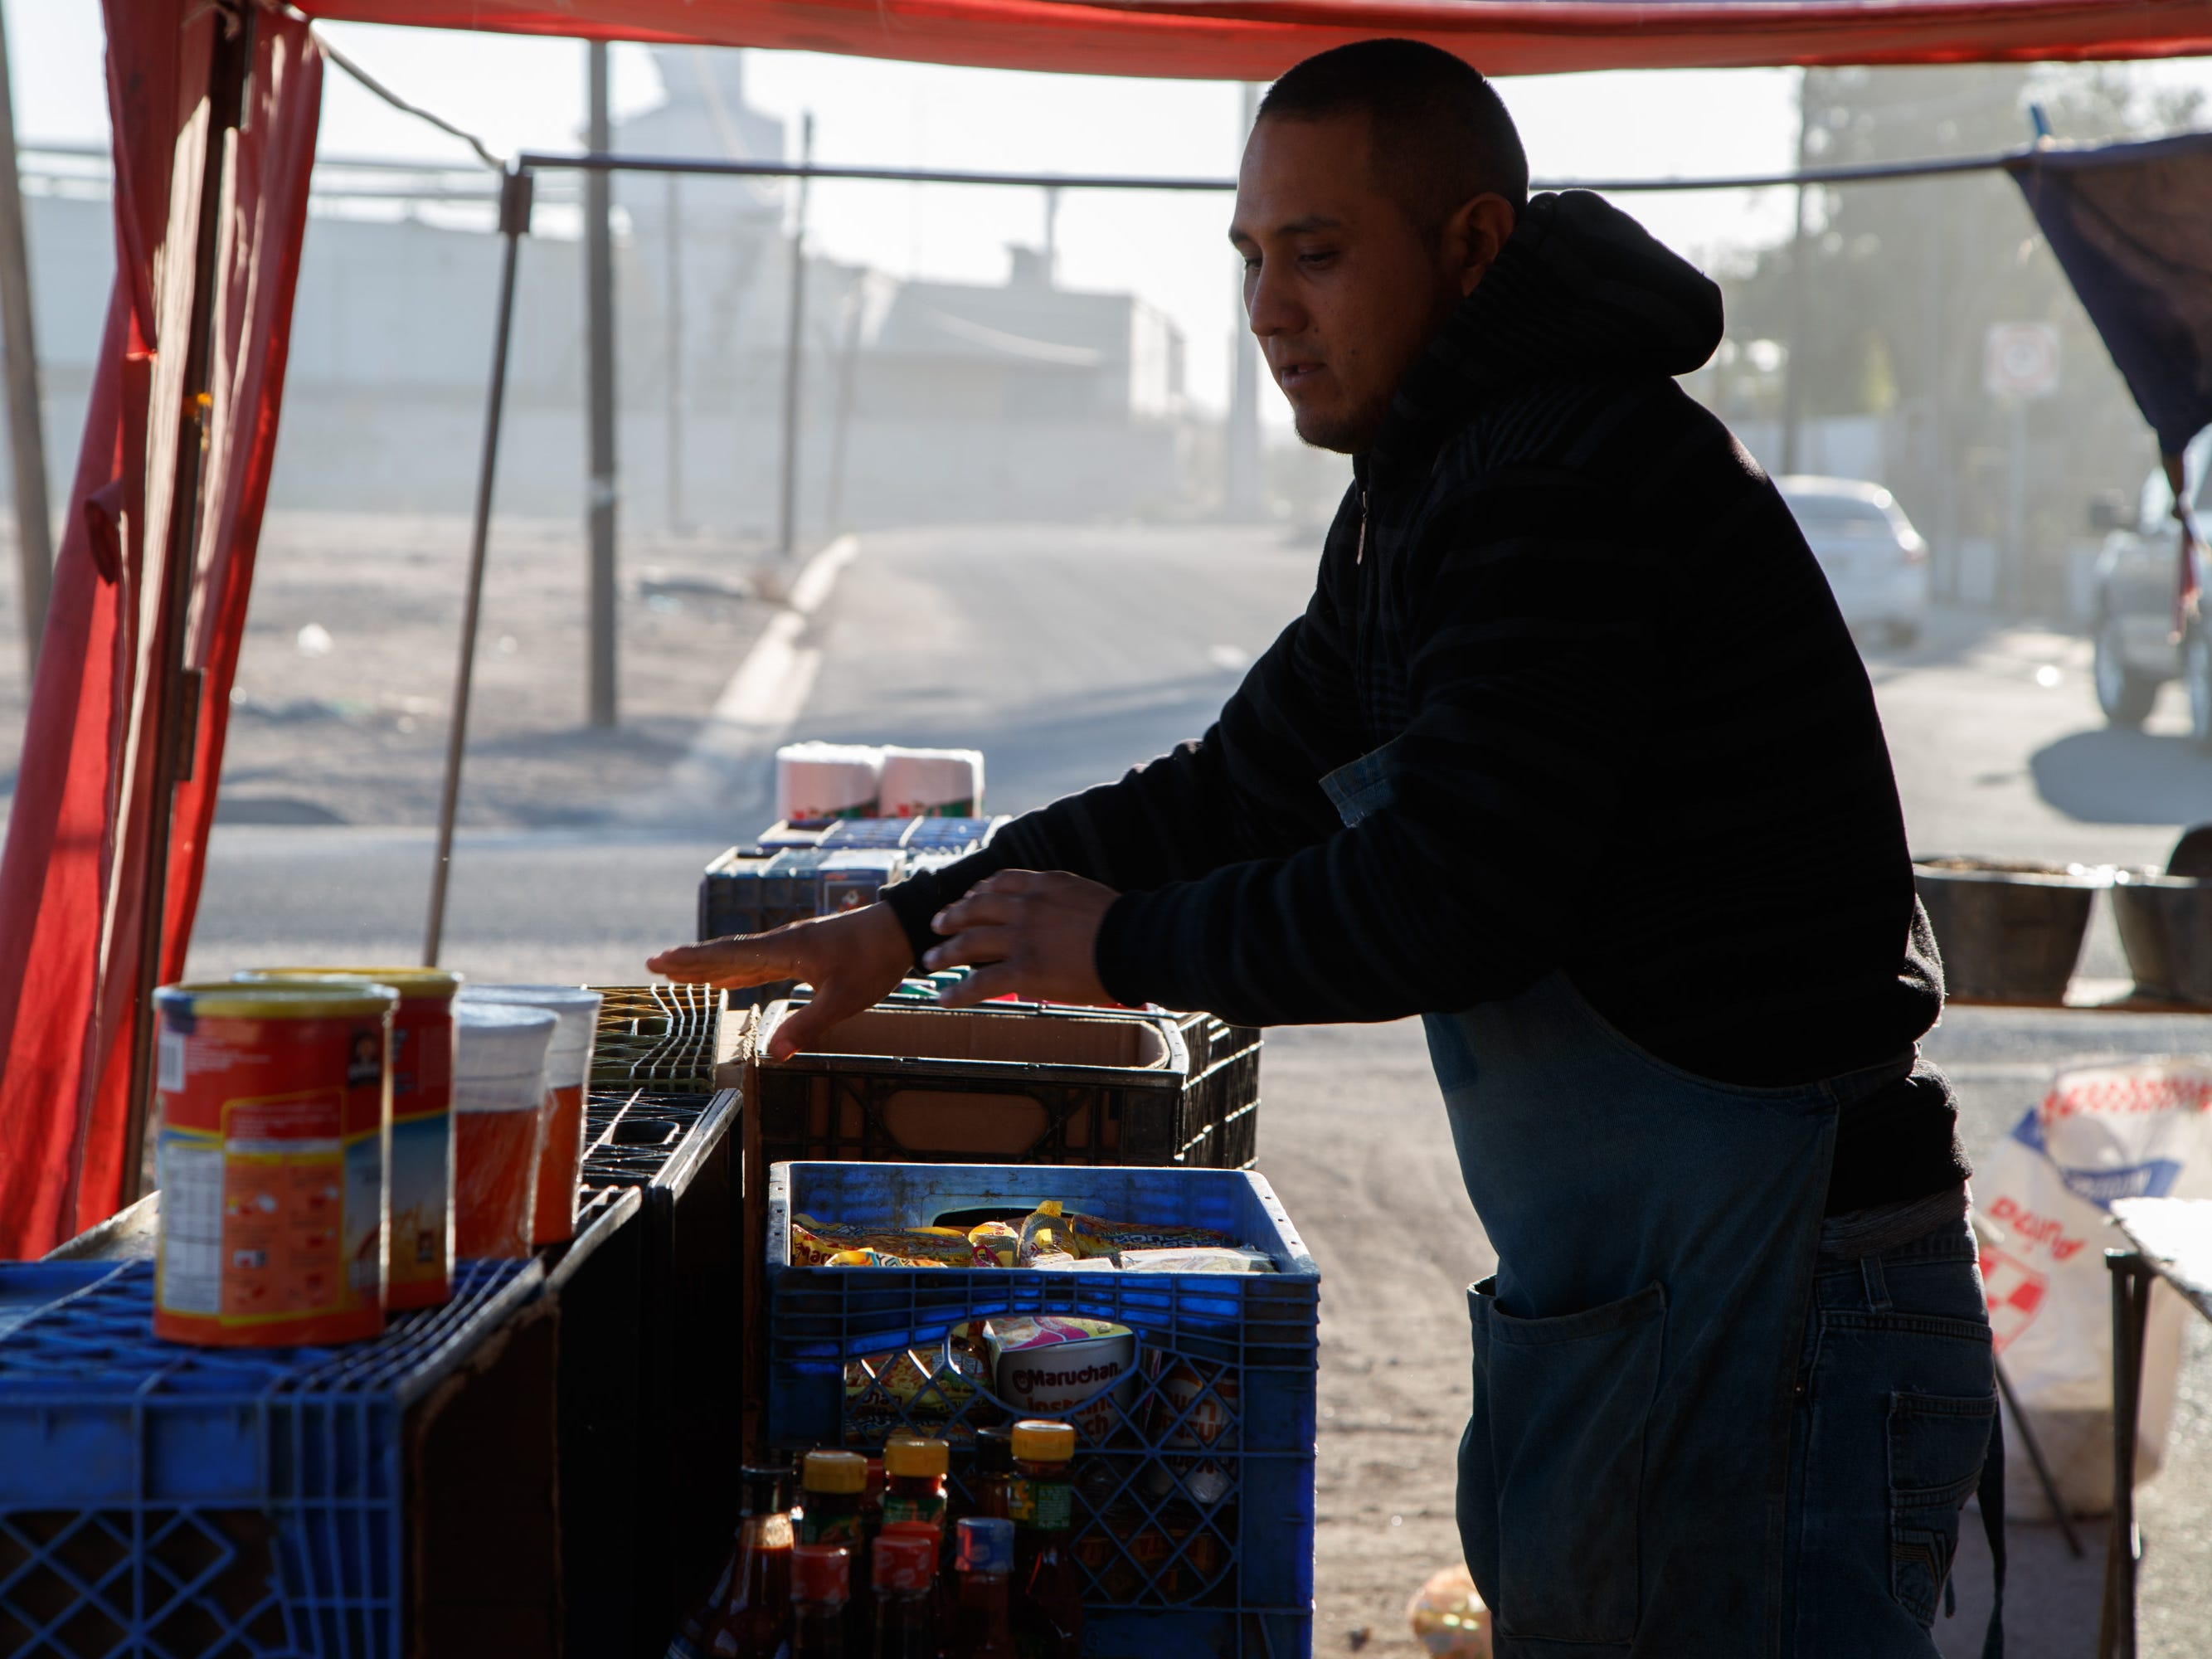 Luis Alberto Rodríguez lays out food at a street market in a Mexicali neighborhood flanked by factories. Behind him is the Smurfit Kappa plant.